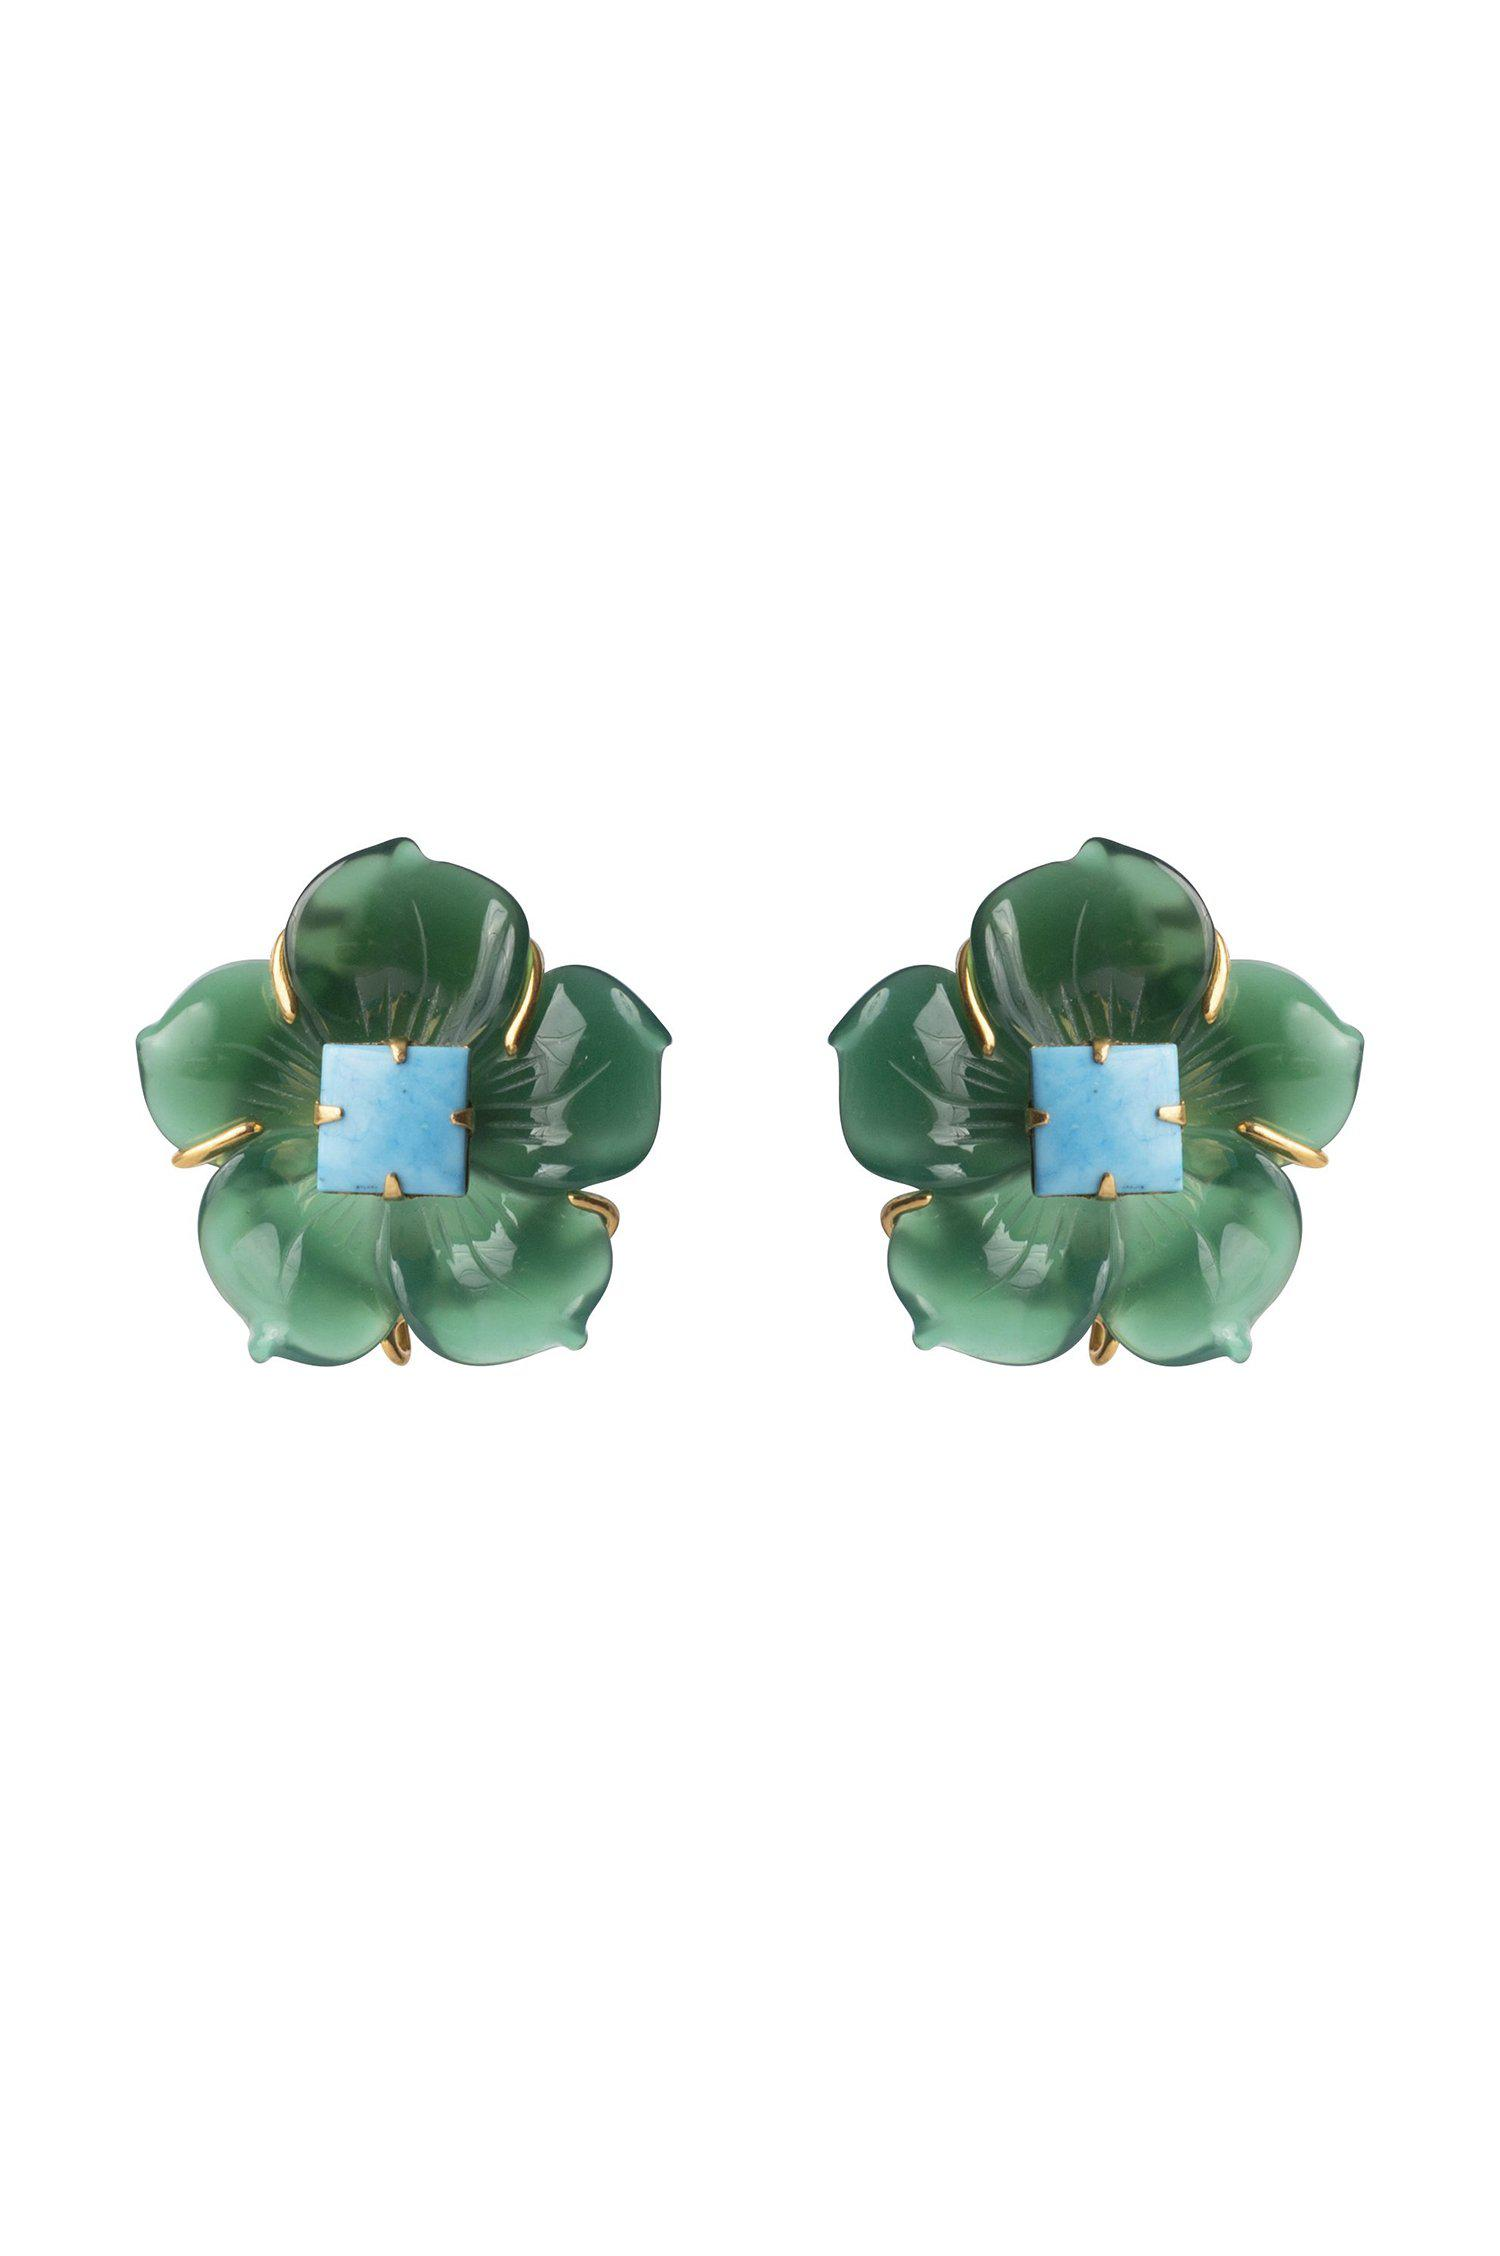 Green Flower Stud with Turquoise Center